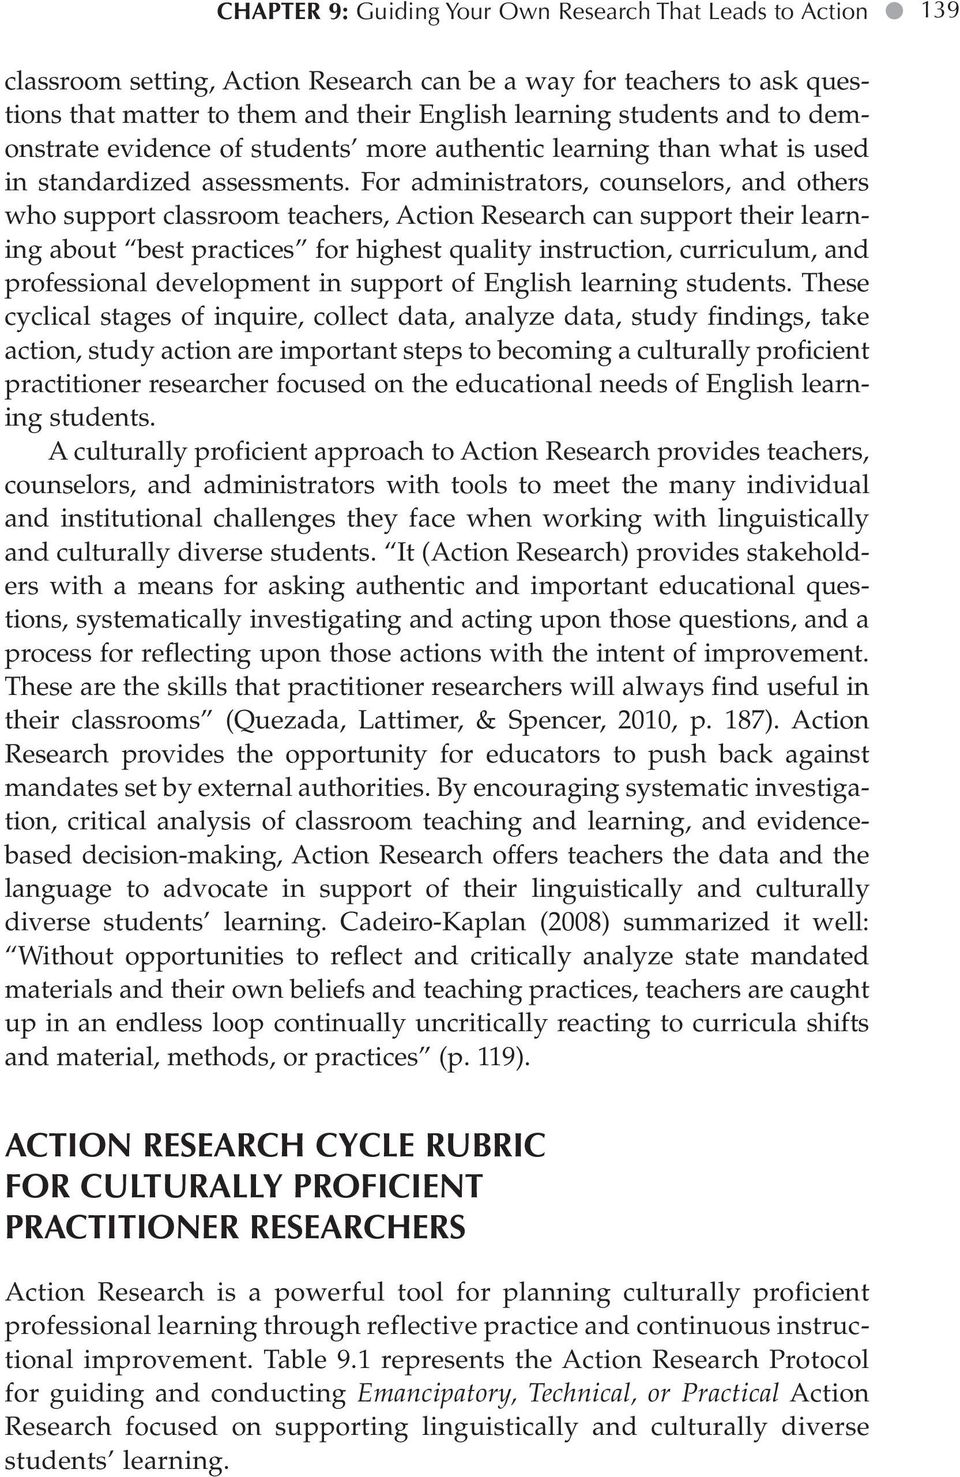 For administrators, counselors, and others who support classroom teachers, Action Research can support their learning about best practices for highest quality instruction, curriculum, and